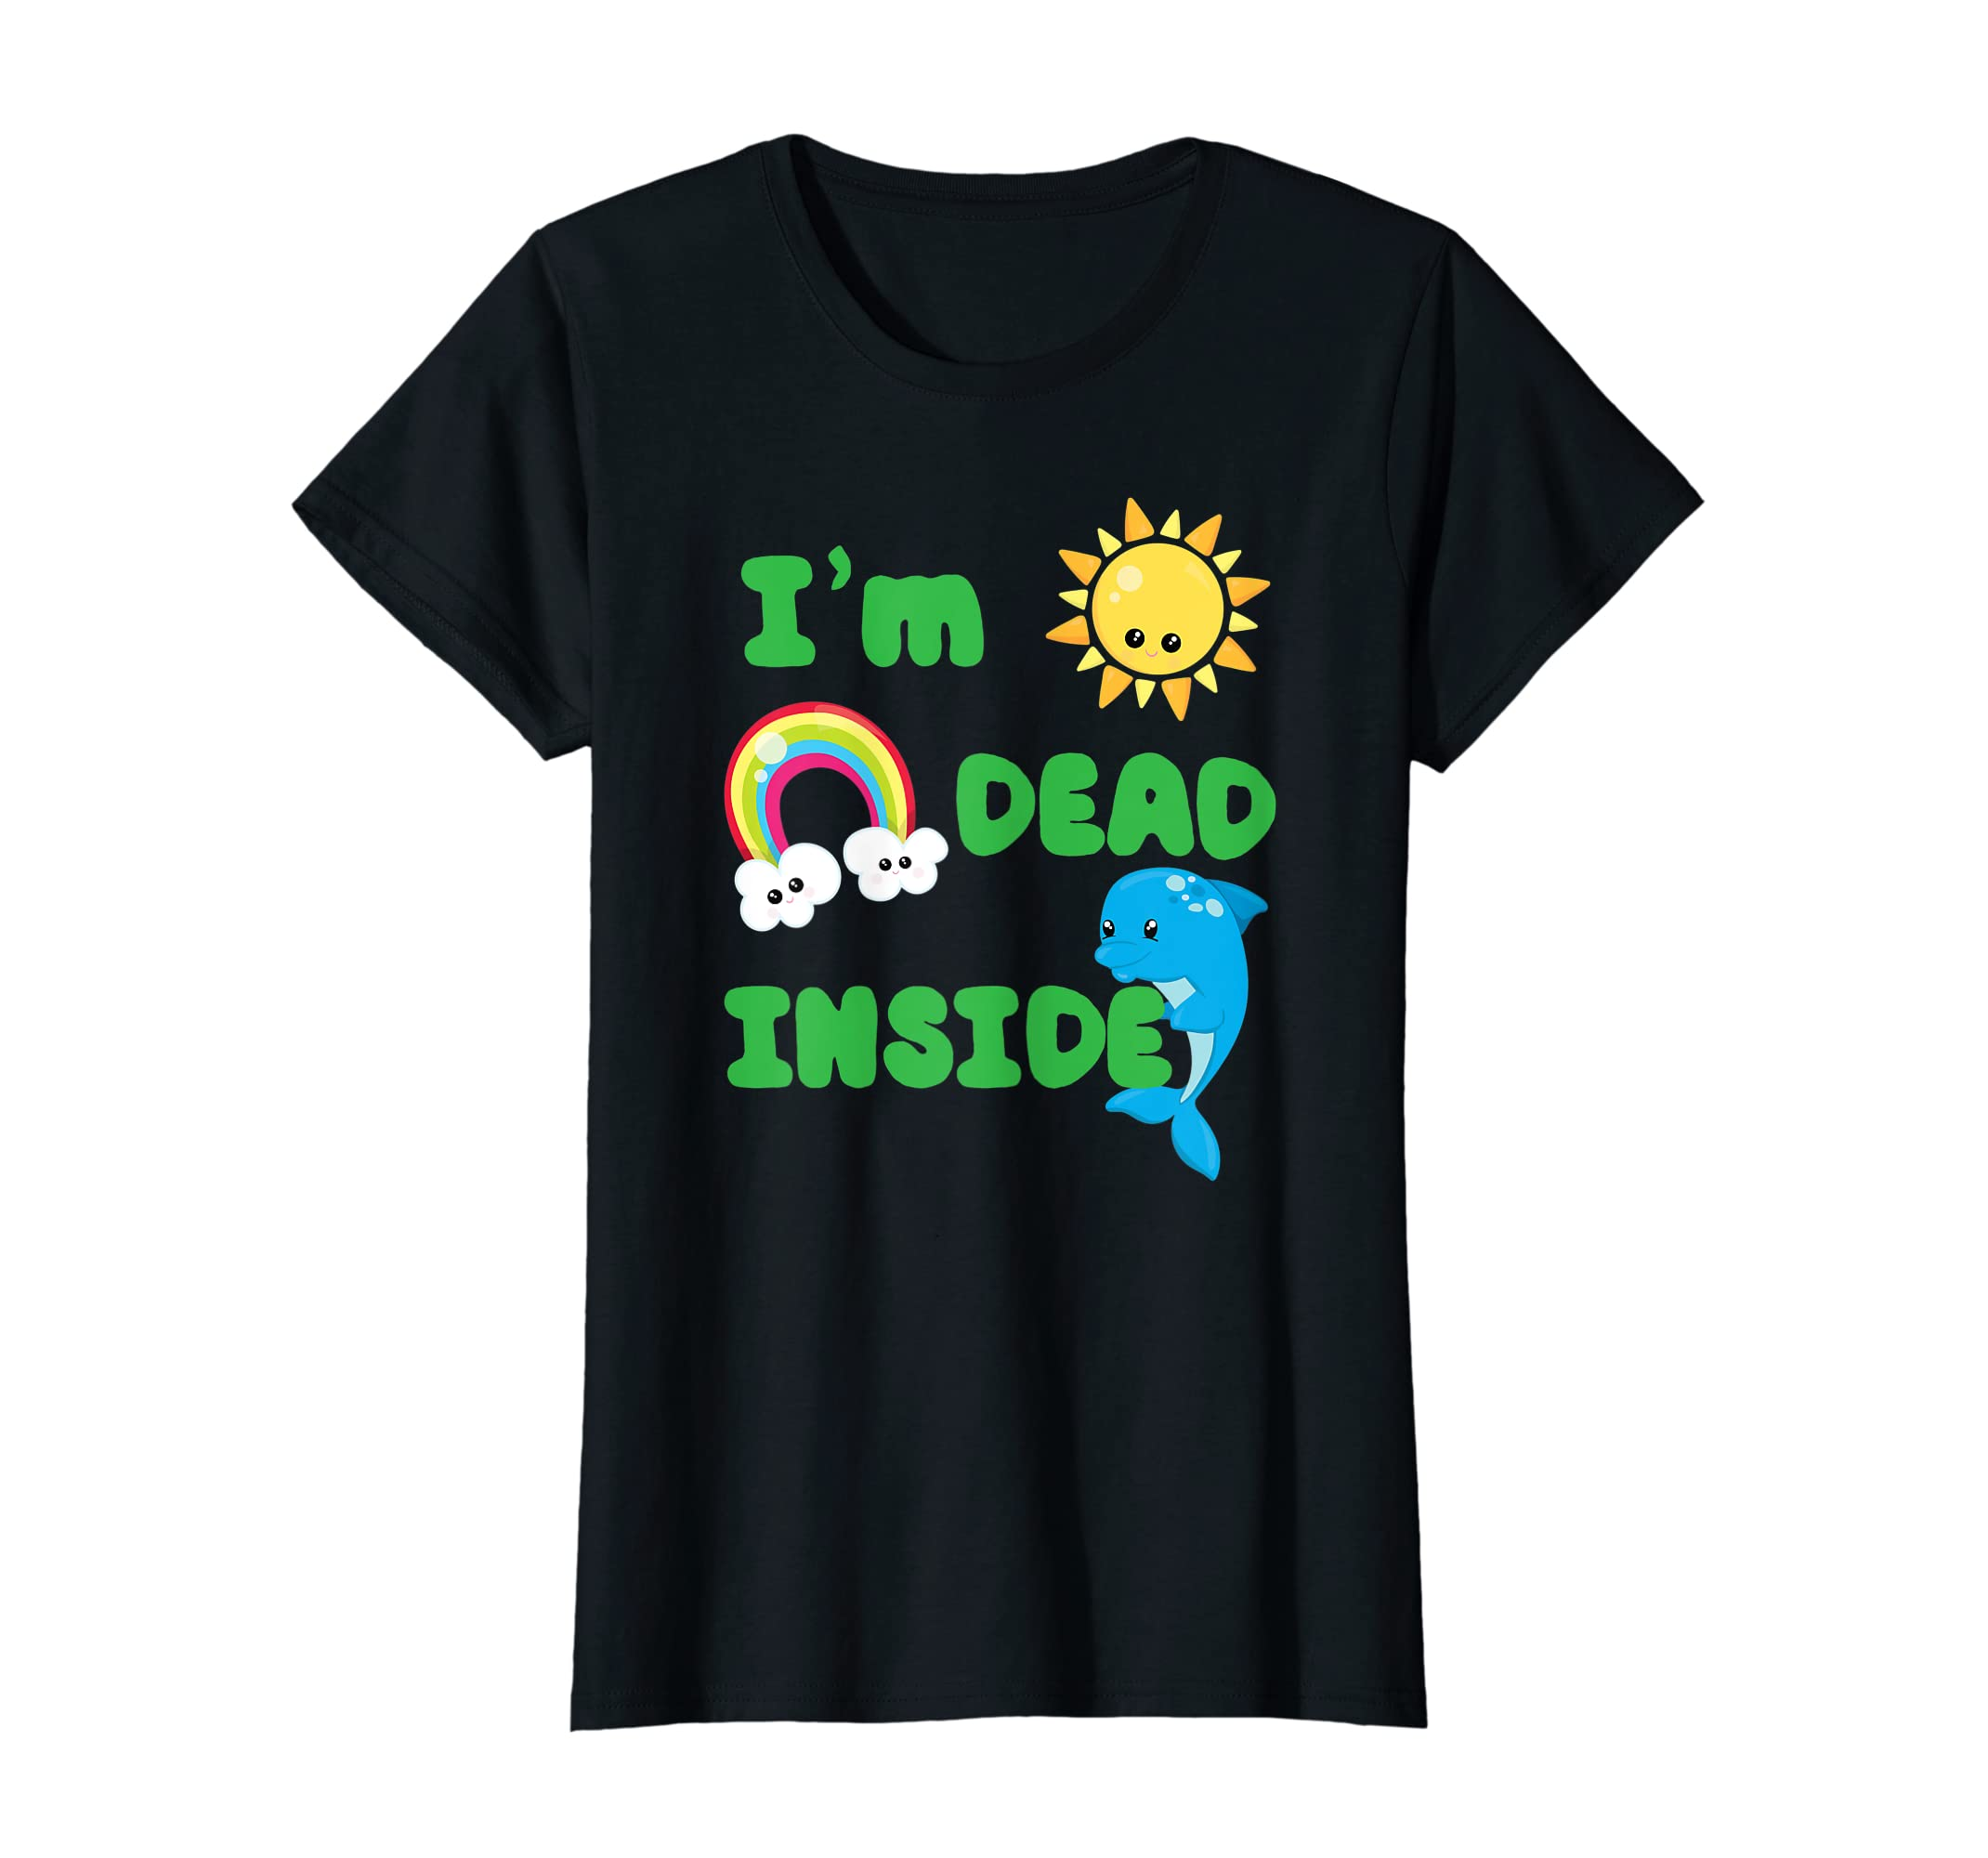 a90f5802444 Amazon.com  I m Dead Inside Funny T Shirt Happy Sun Rainbow Dolphin   Clothing